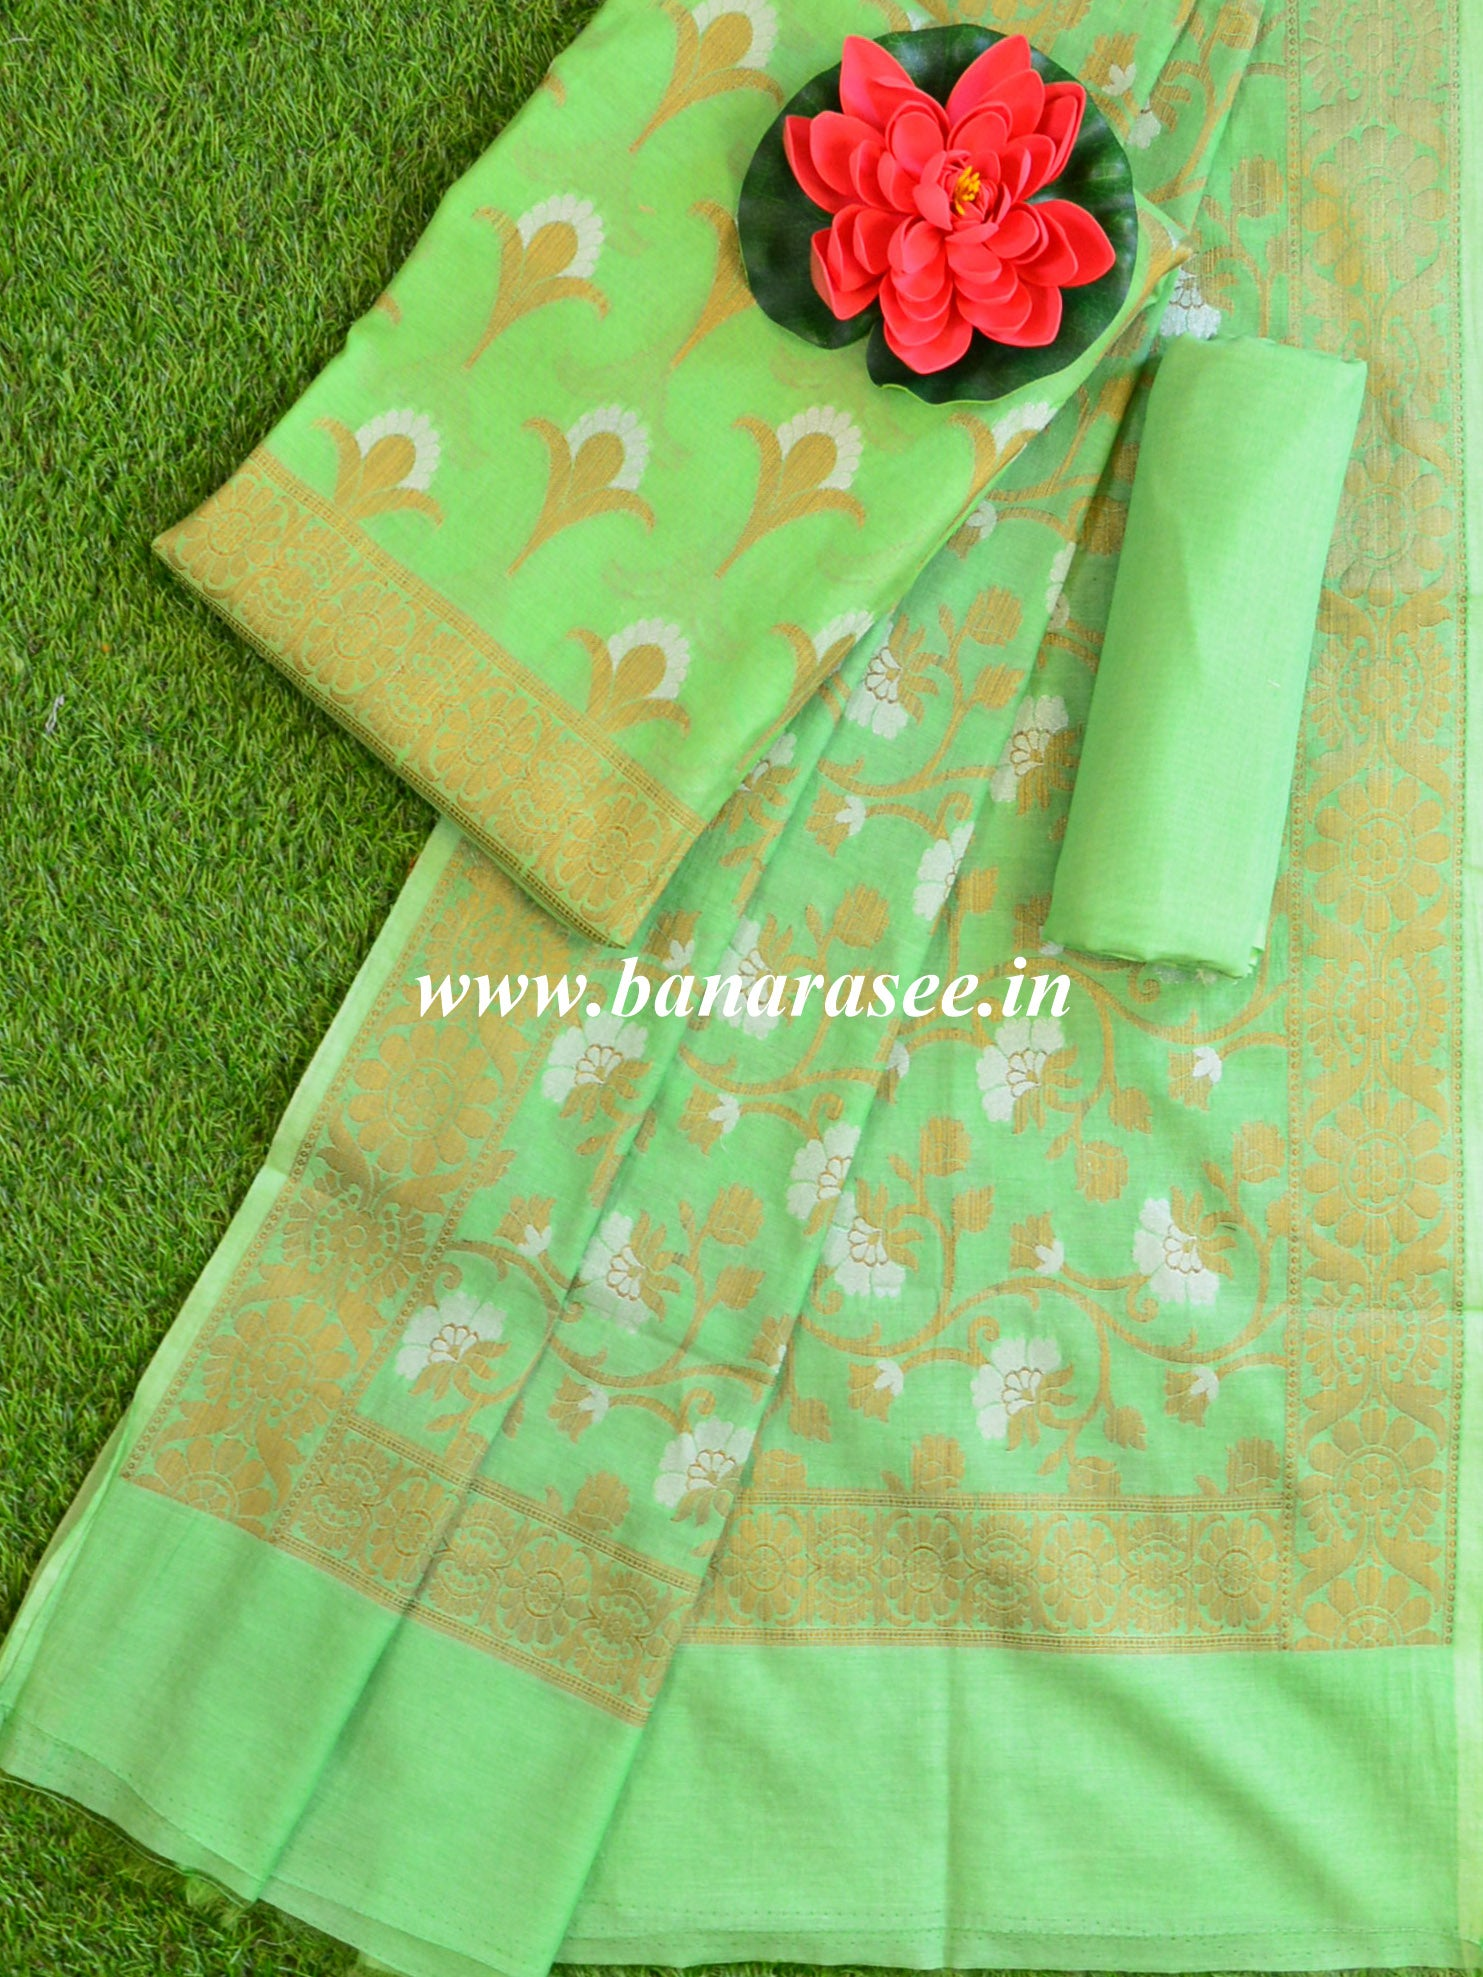 Banarasee Pure Handloom Cotton Sona Rupa Zari Salwar Kameez Set-Mint Green